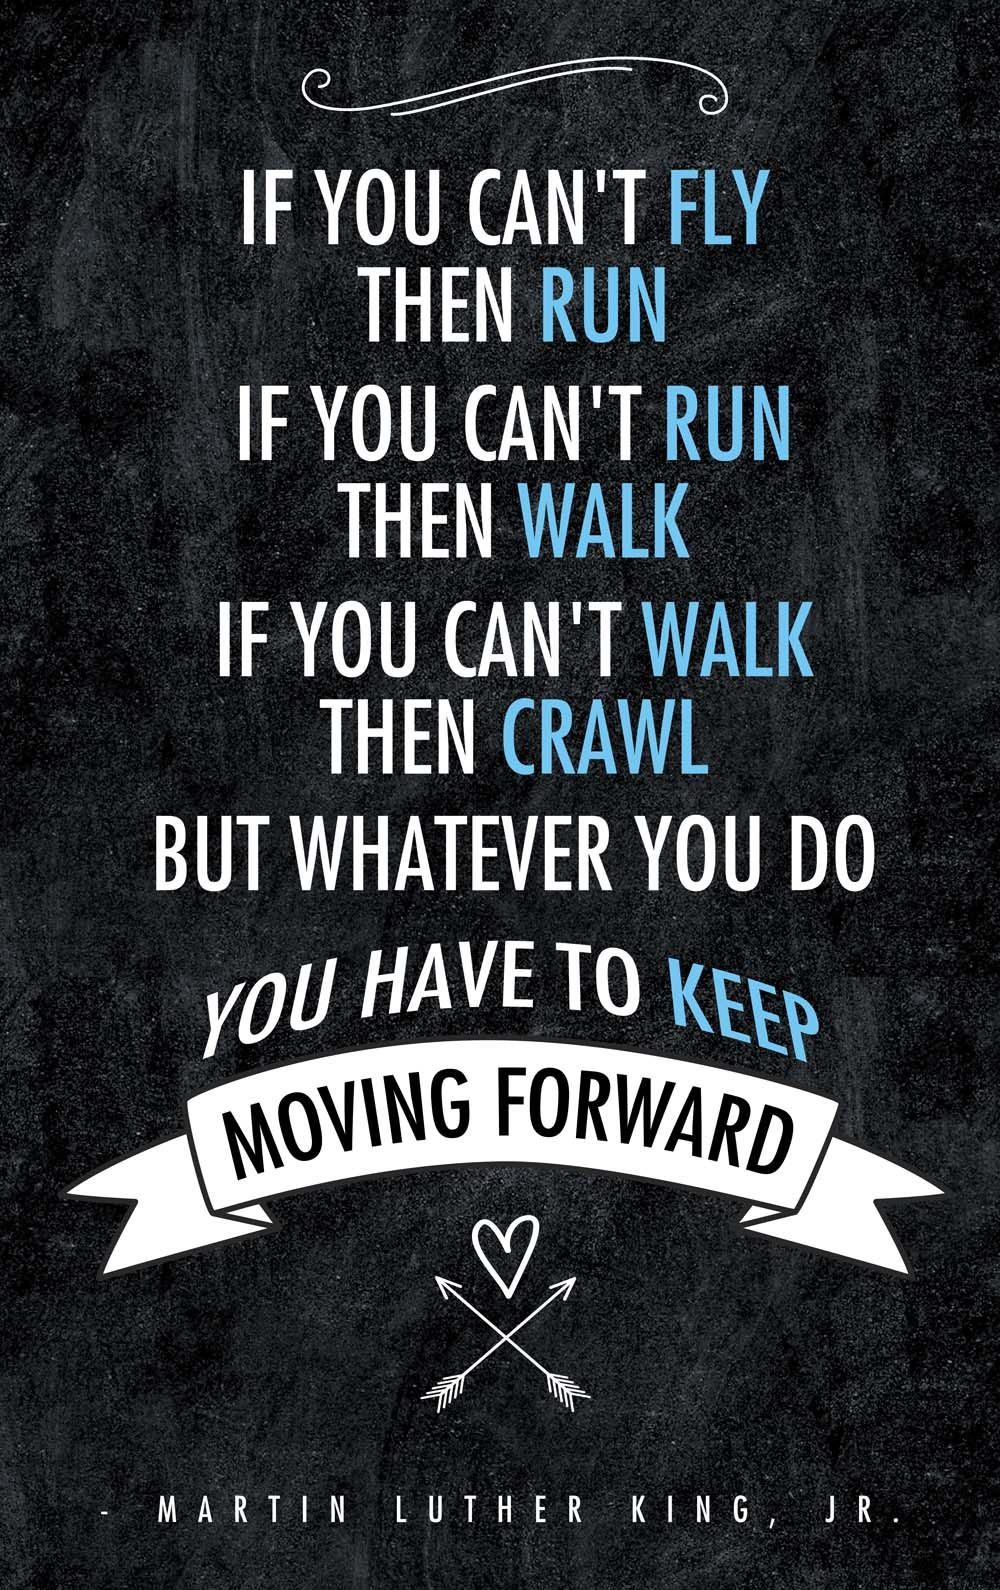 Keep Moving Forward! #quote #martinlutherking